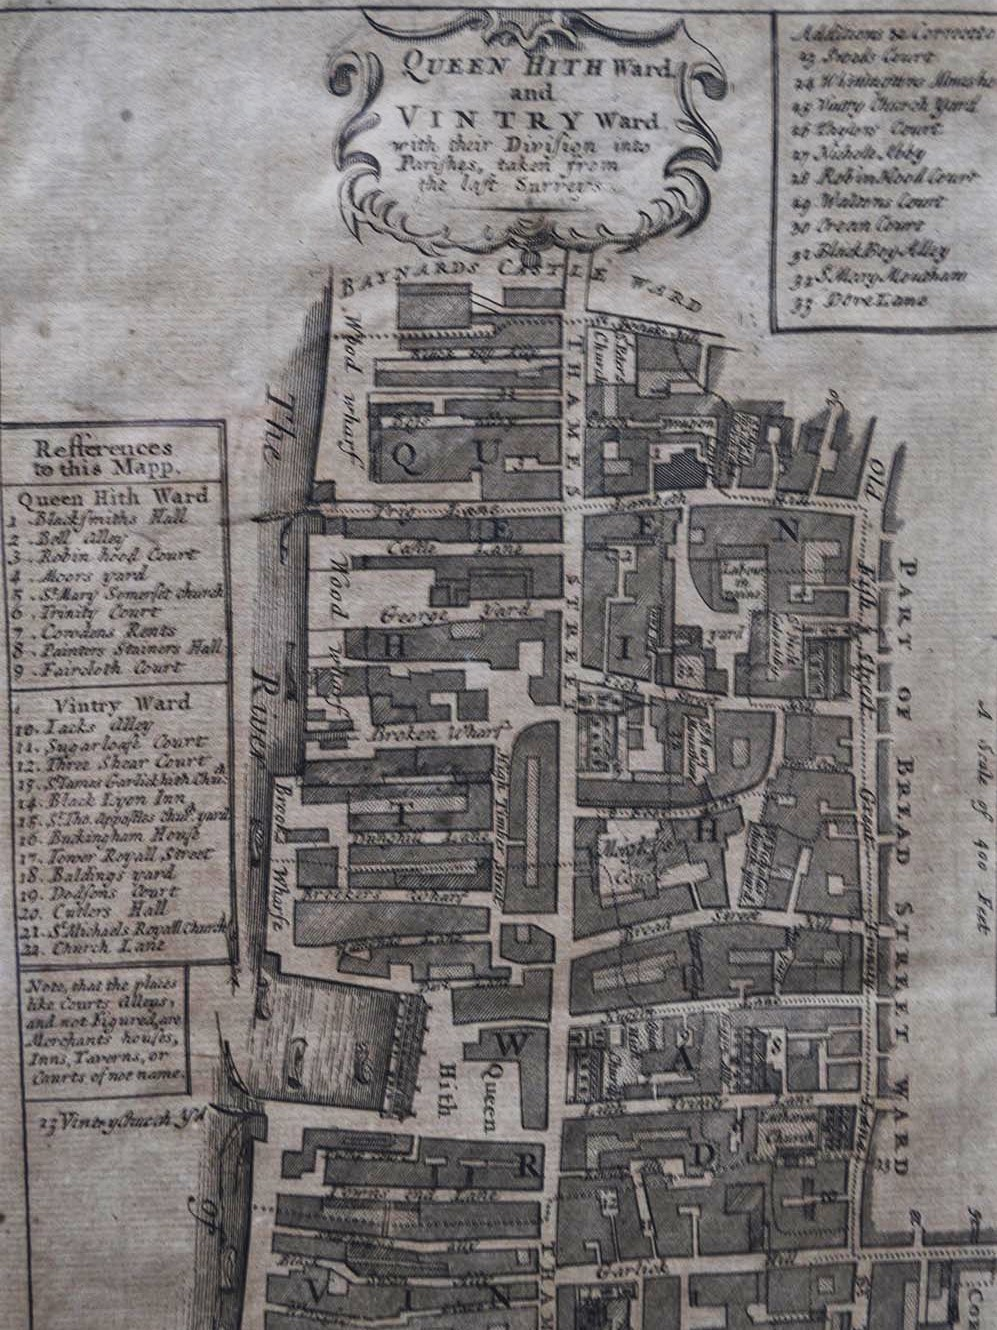 Hand-drawn map of St James Garlickhythe parish from 1754, of the wards of Vintry and Queenhithe